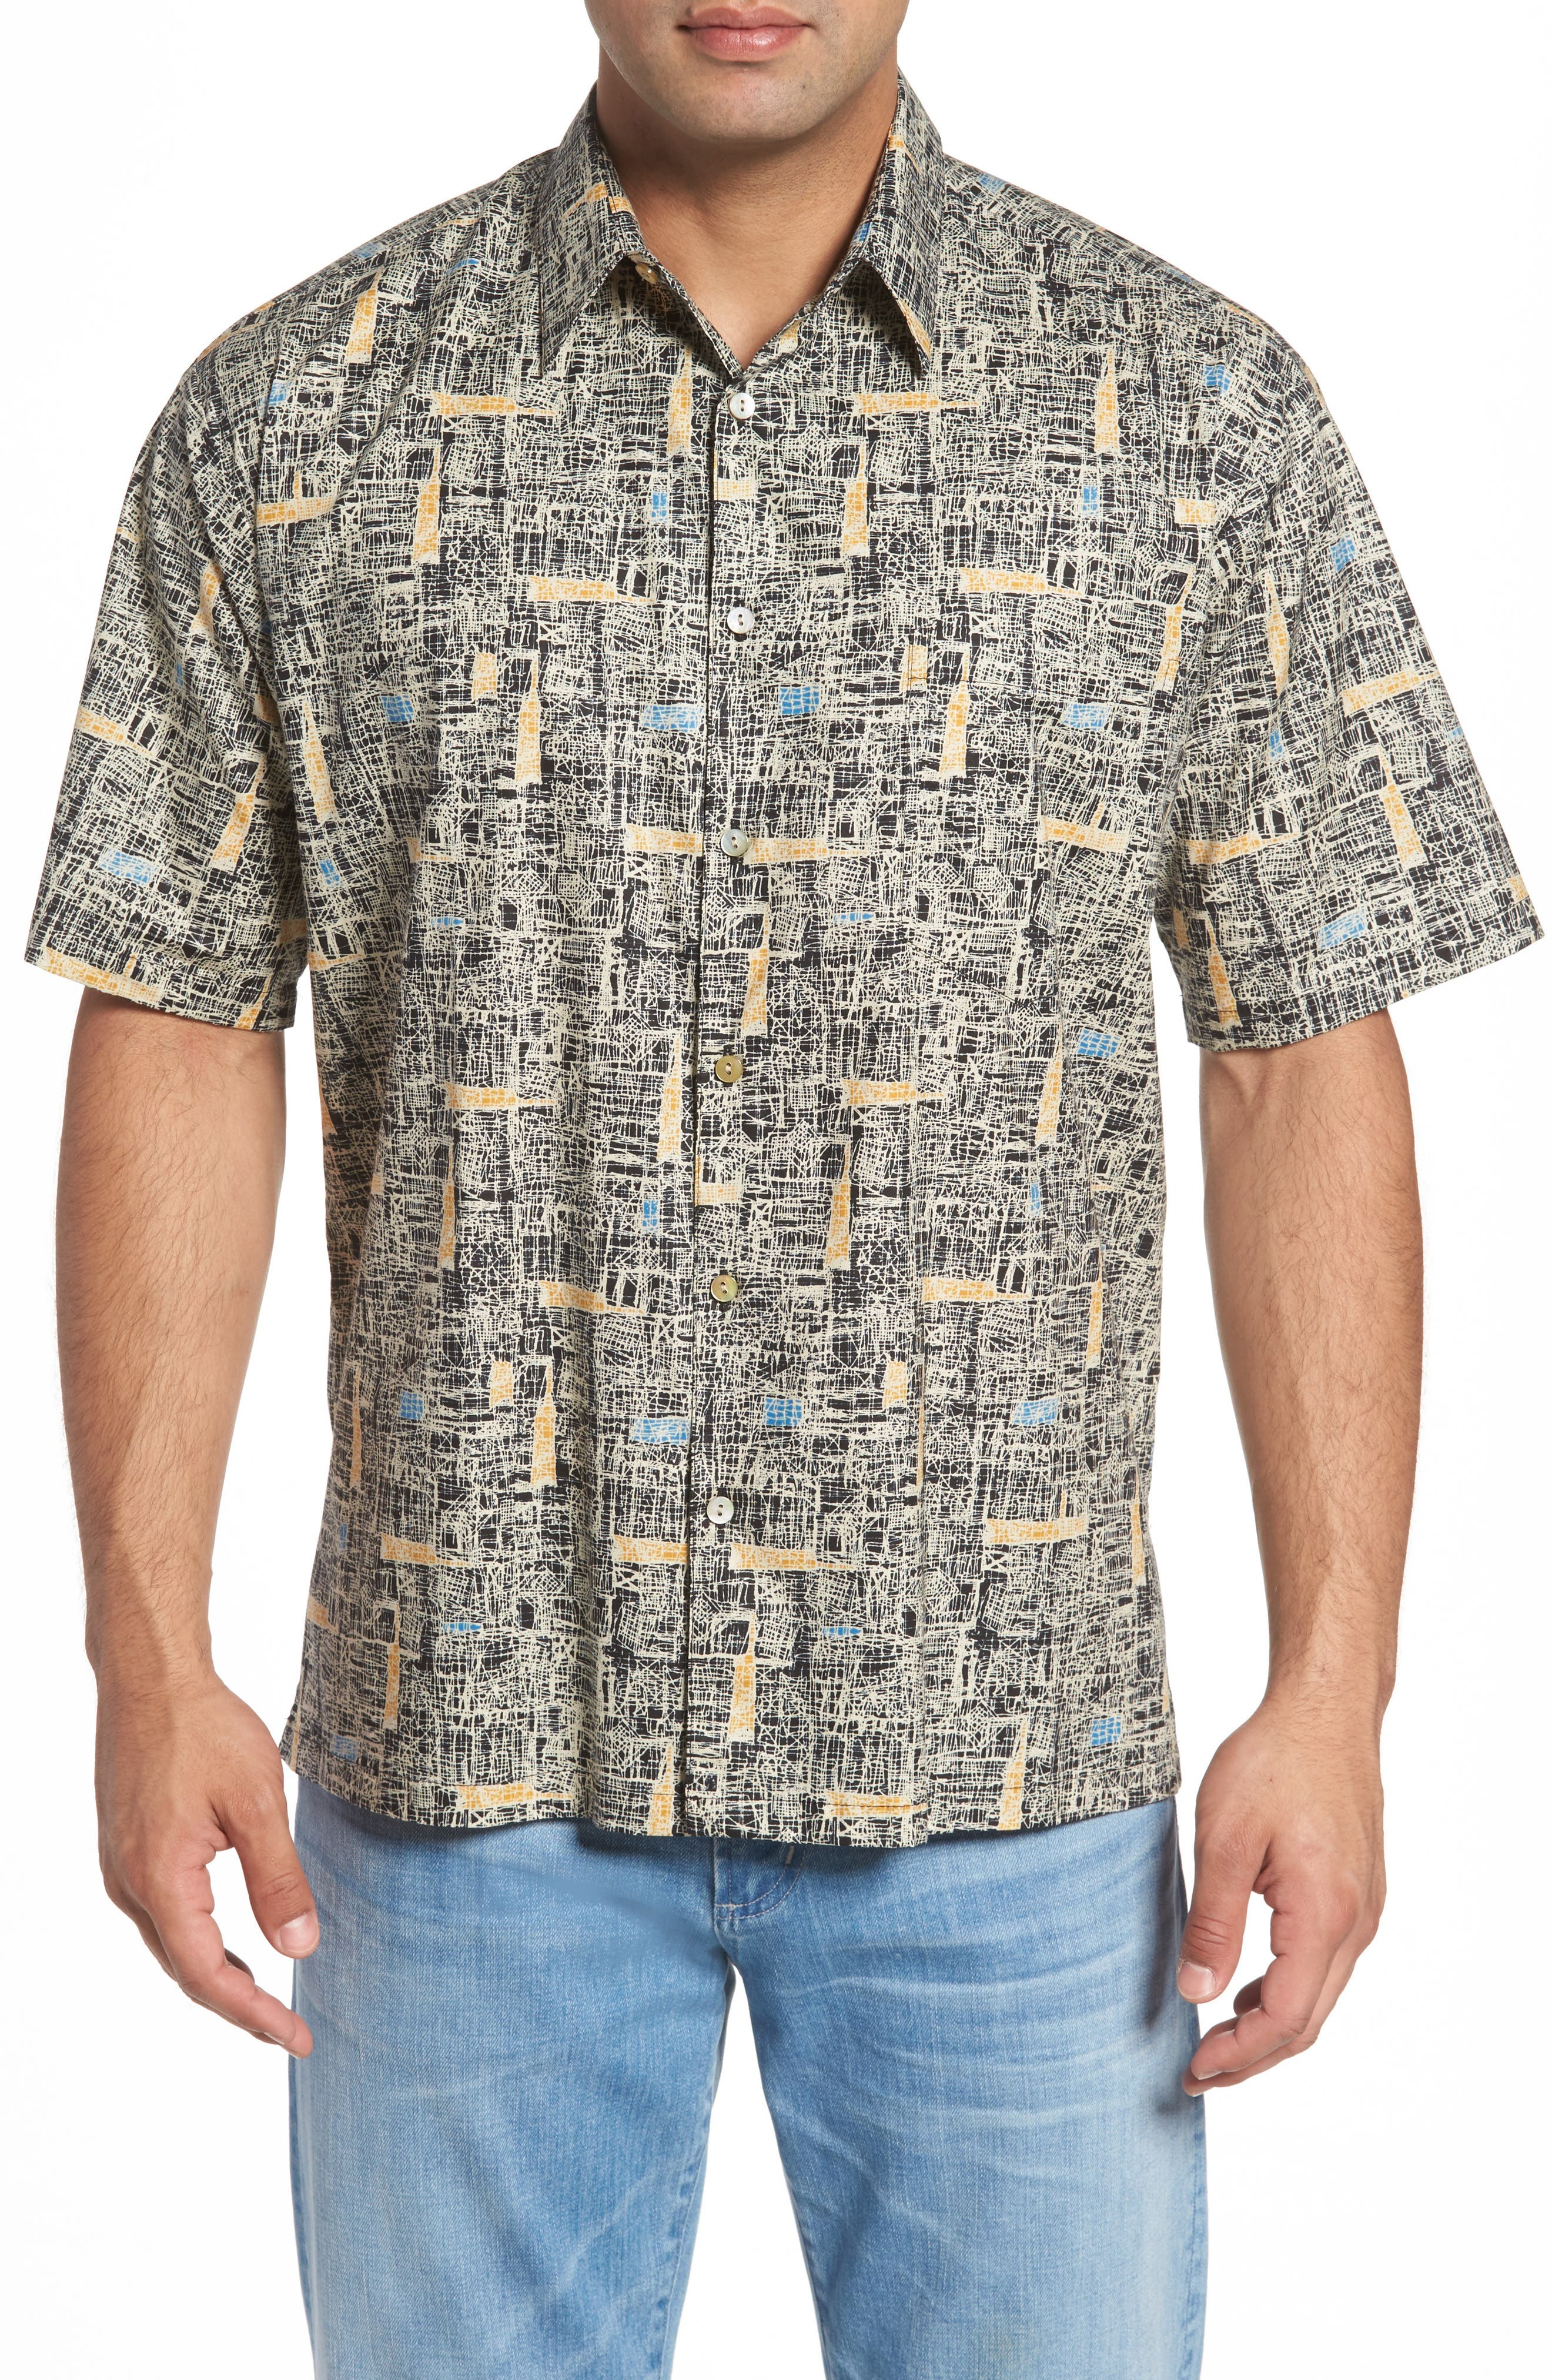 Alternate Image 1 Selected - Tori Richard Jasper Abstract Print Camp Shirt